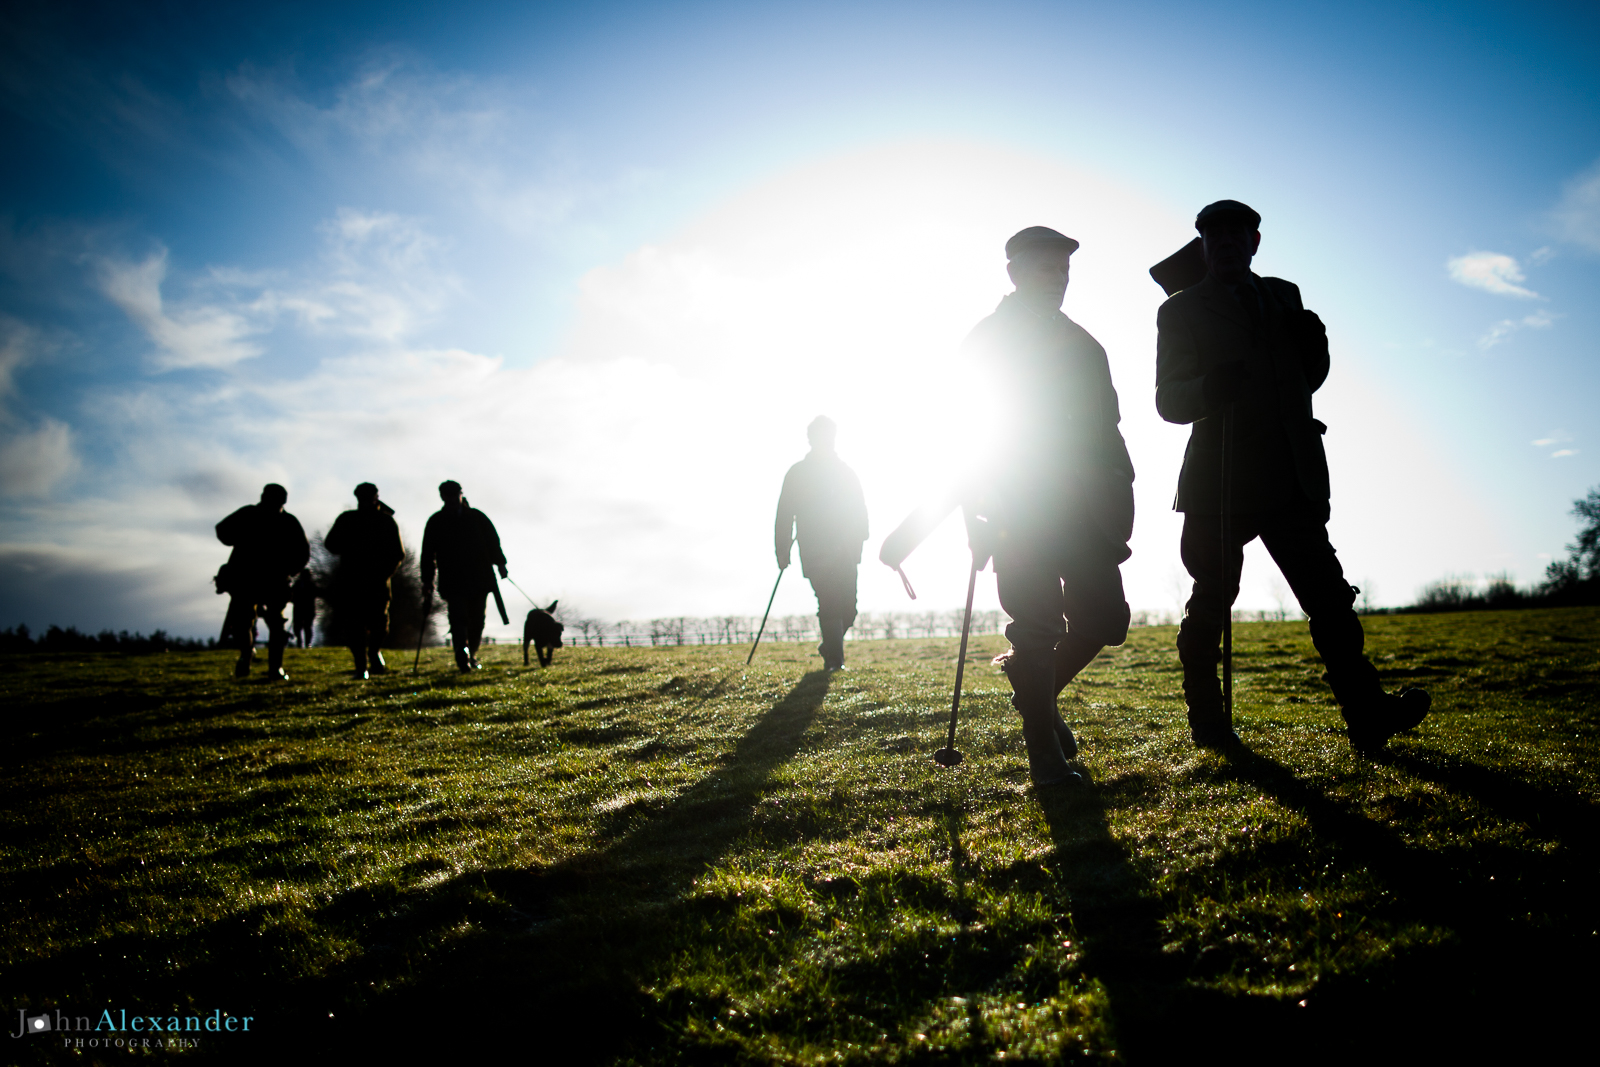 silhouettes of guns walking through a field